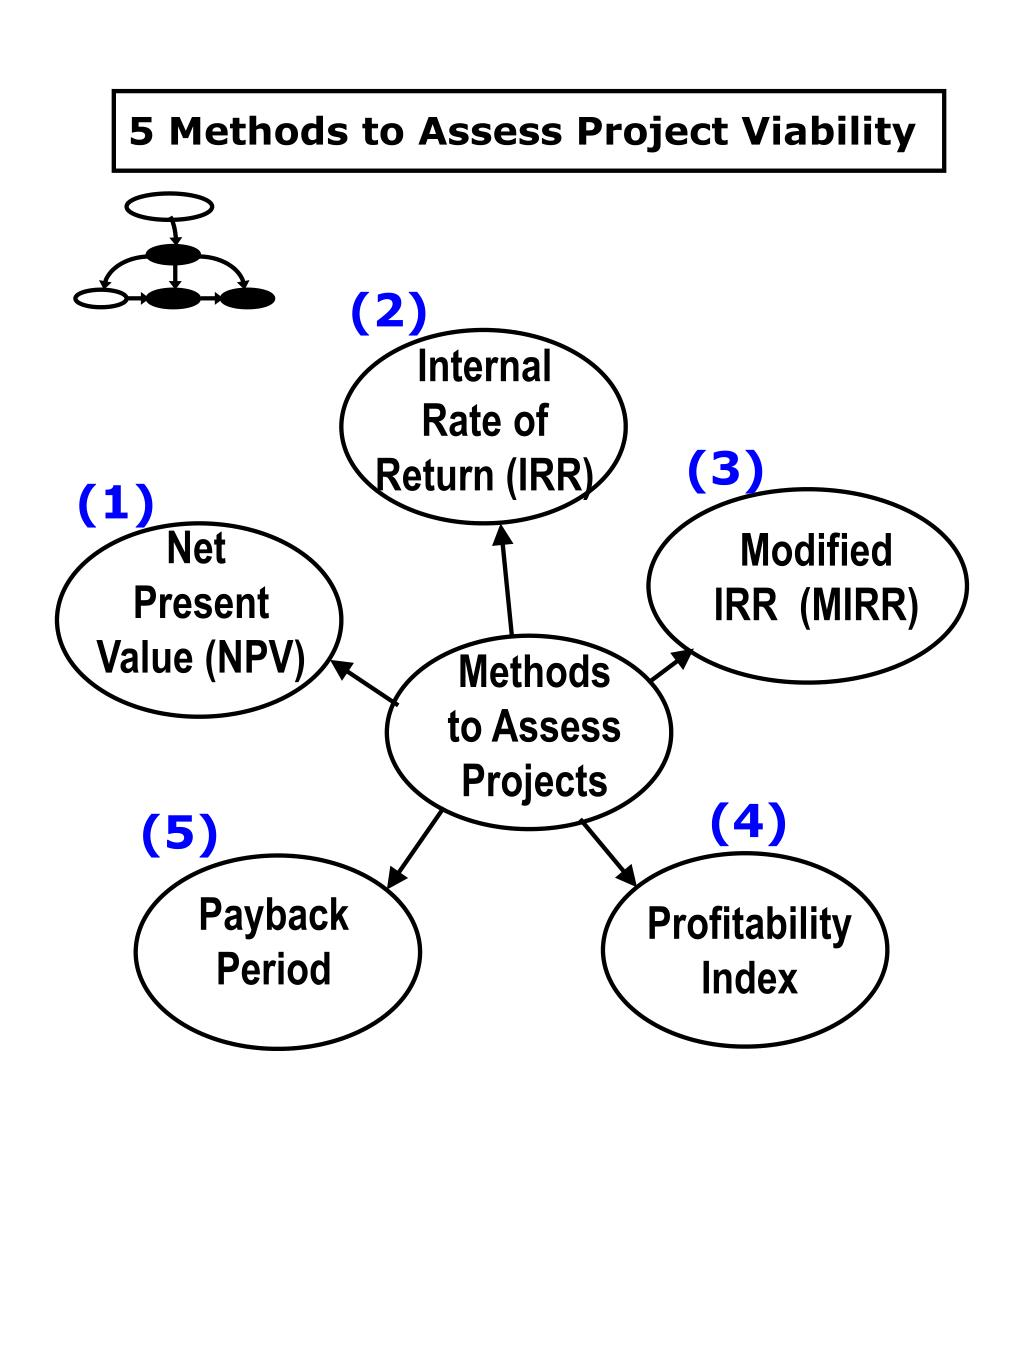 5 Methods to Assess Project Viability